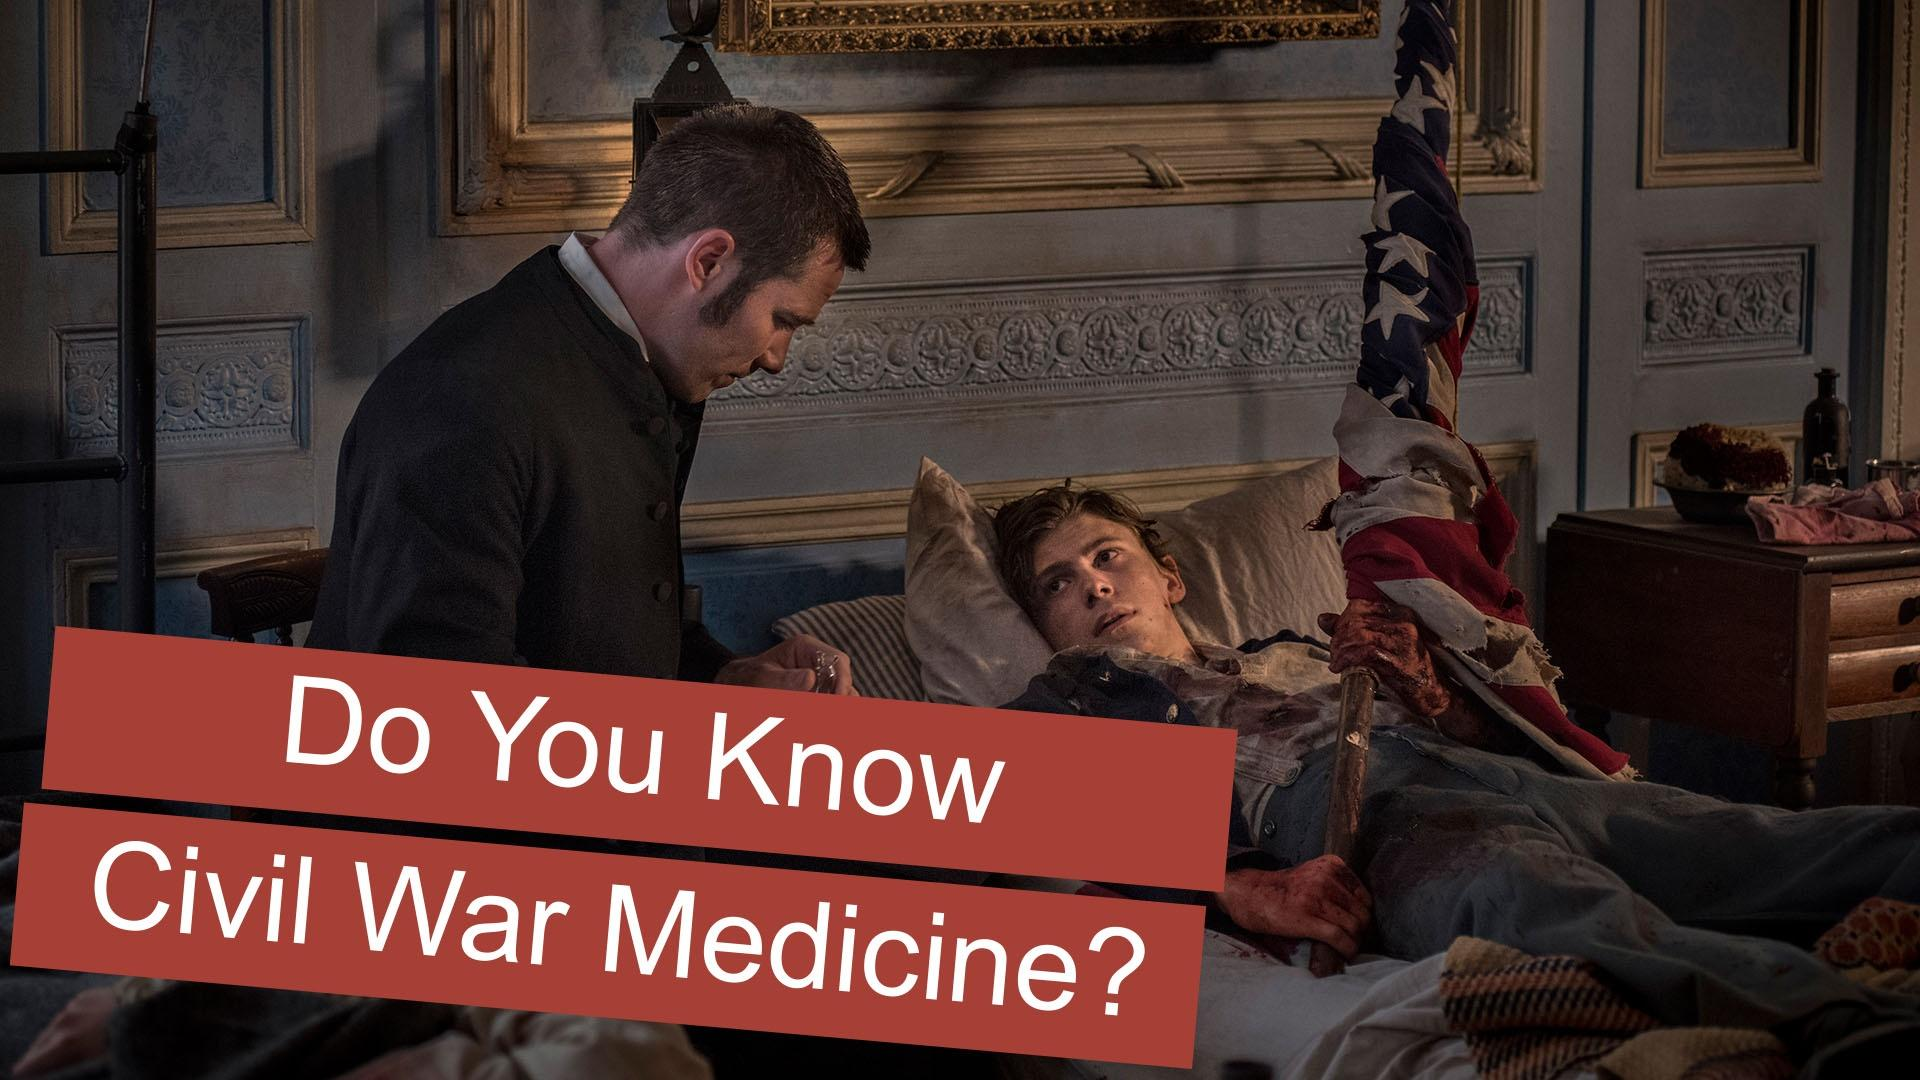 QUIZ: Civil War Medicine